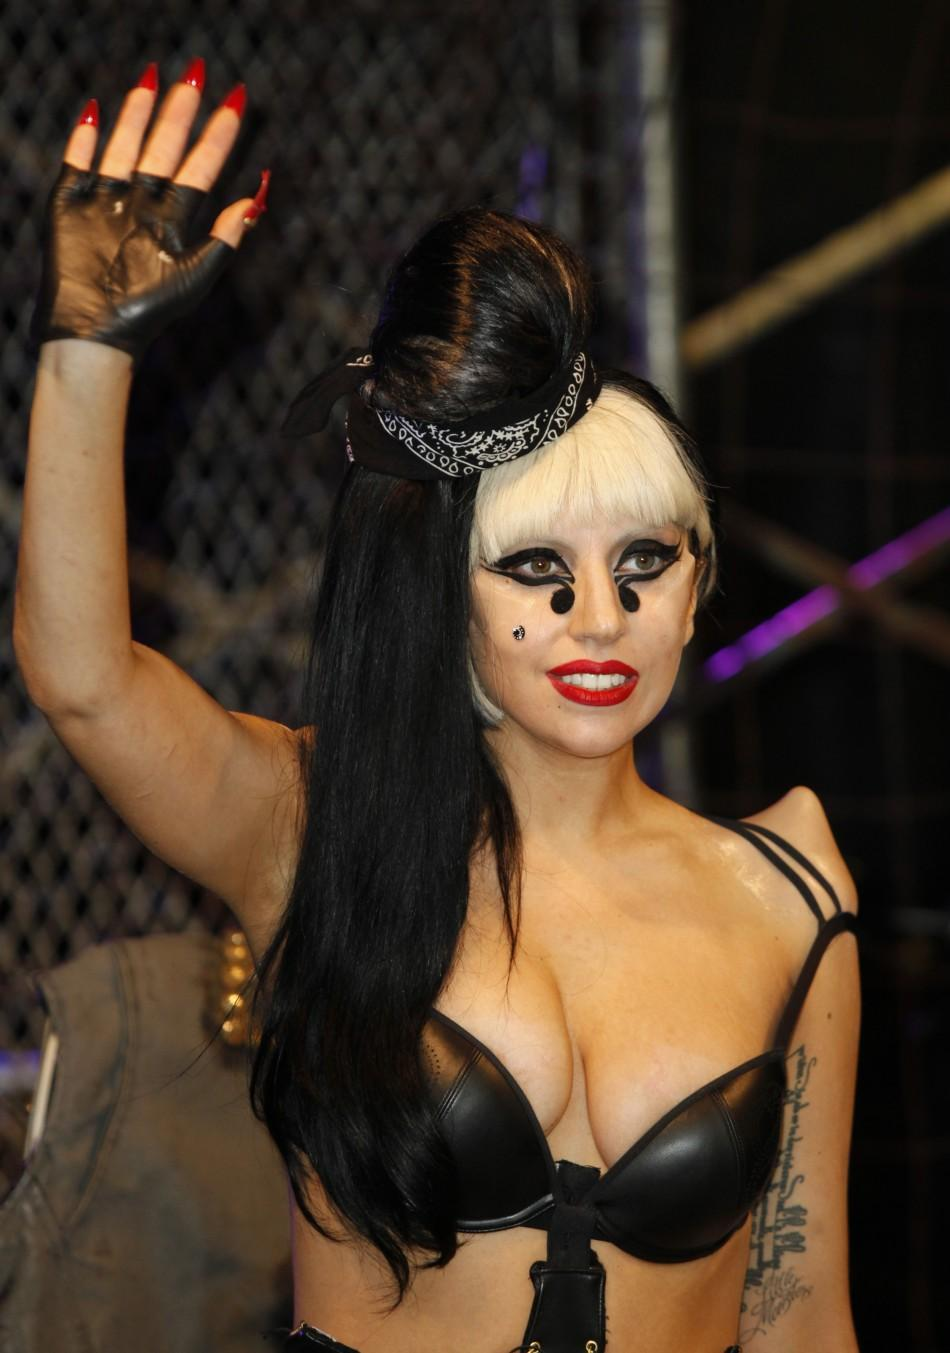 """Singer Lady Gaga arrives at an album signing event for her new release """"Born This Way"""" at Best Buy in New York City"""